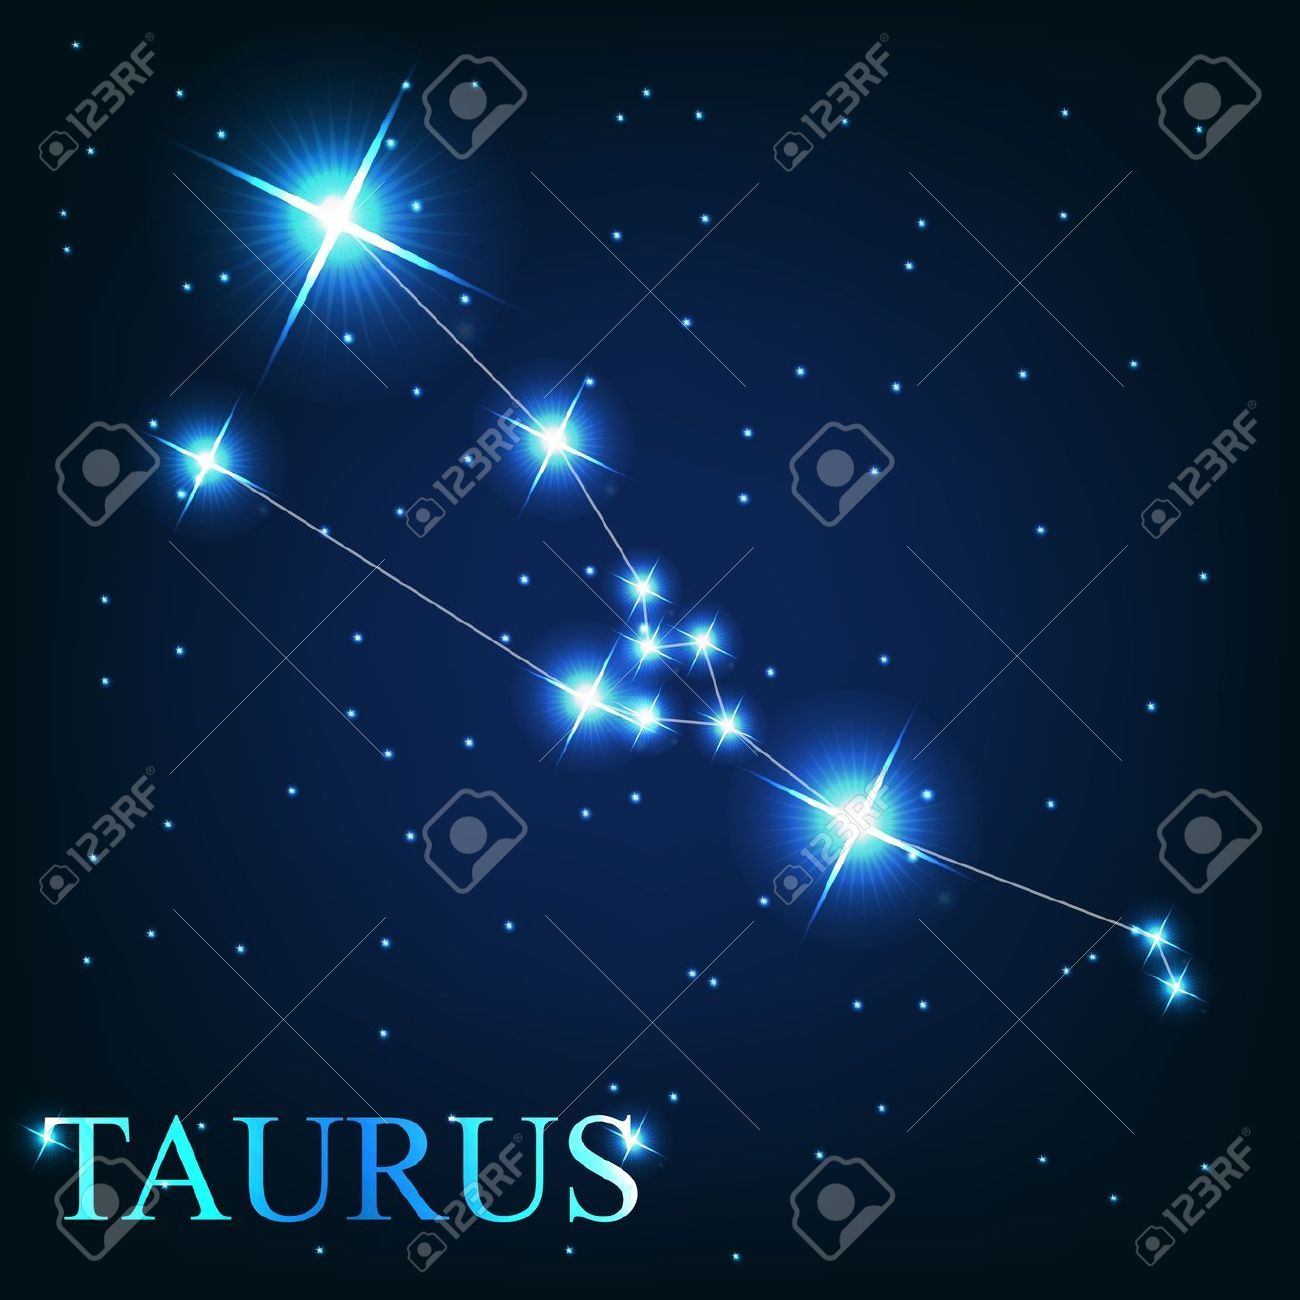 Stier Sternzeichen Stock Photo Tattoos Taurus Constellation Tattoo Taurus